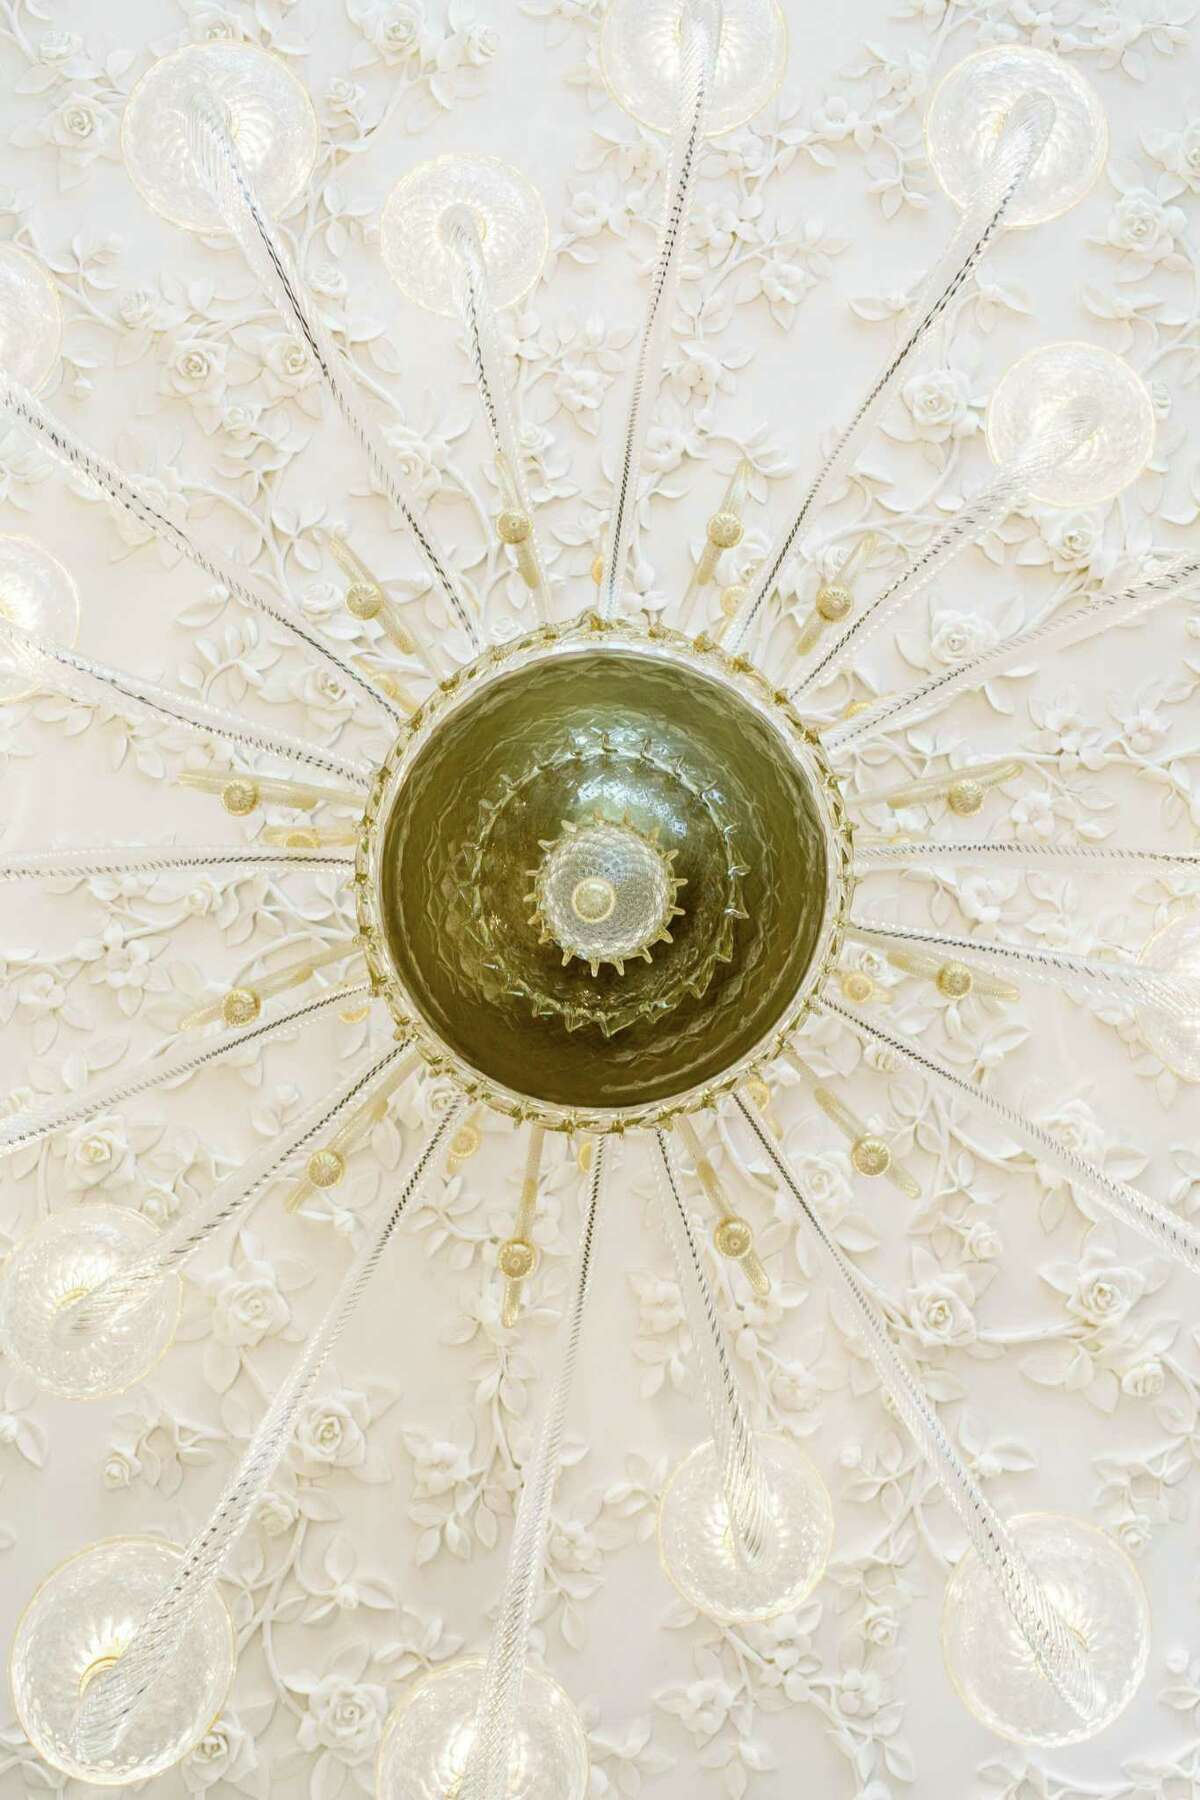 The rotunda of ValobraMaster Jewelers new store in River Oaks has a custom Venetian chandelier and ceiling sculptured with vines and roses.